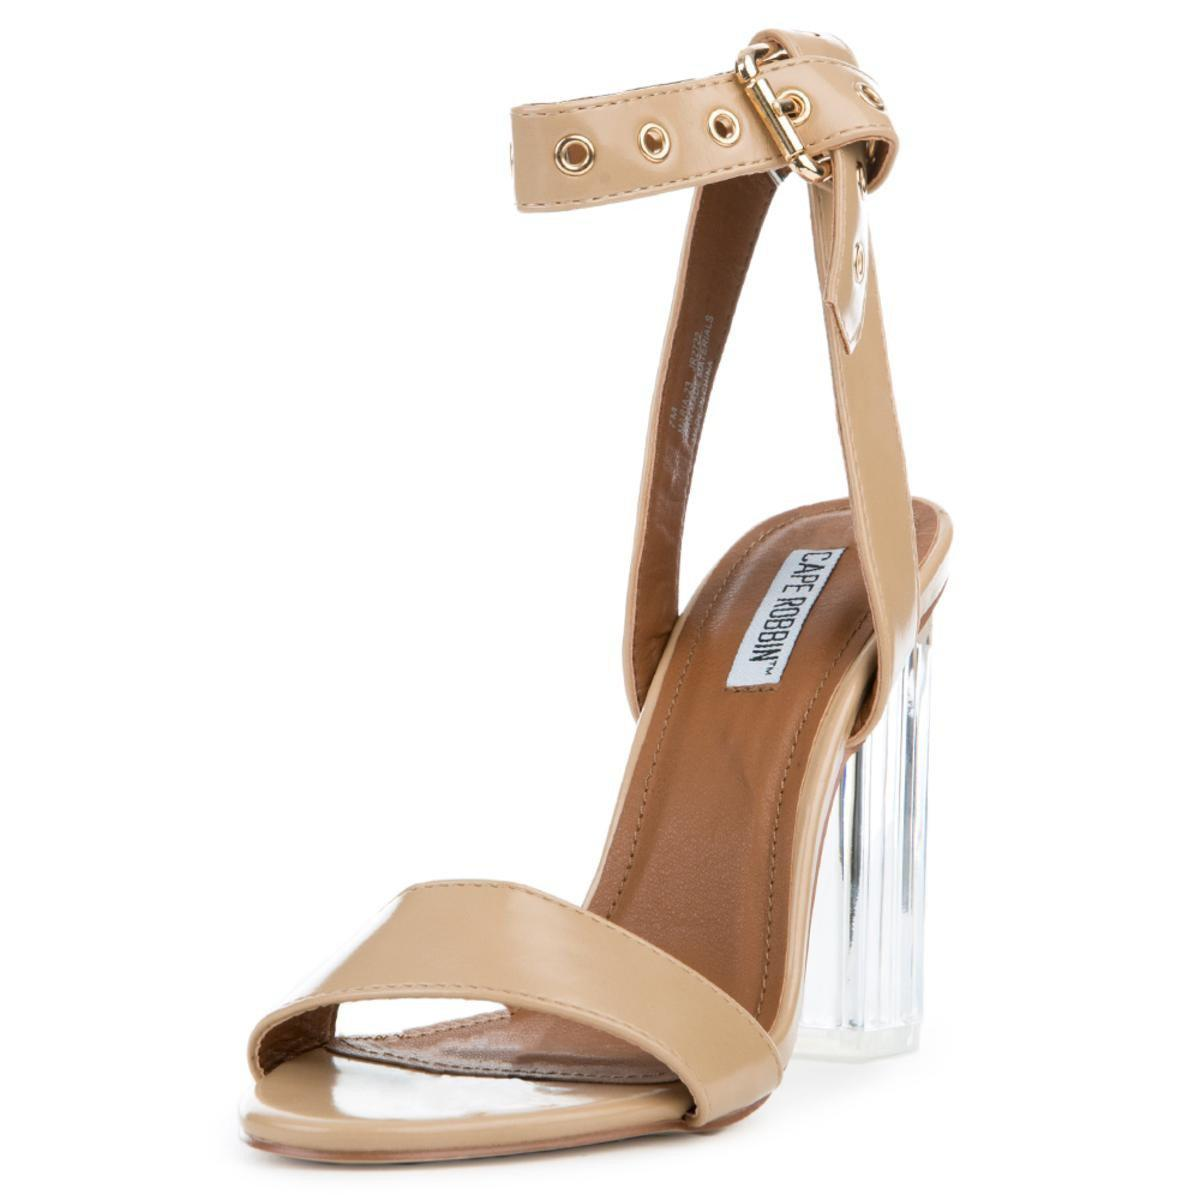 a98d2a16ac Cape Robbin - Natural Maria-23 High Heel In Nude - Lyst. View fullscreen